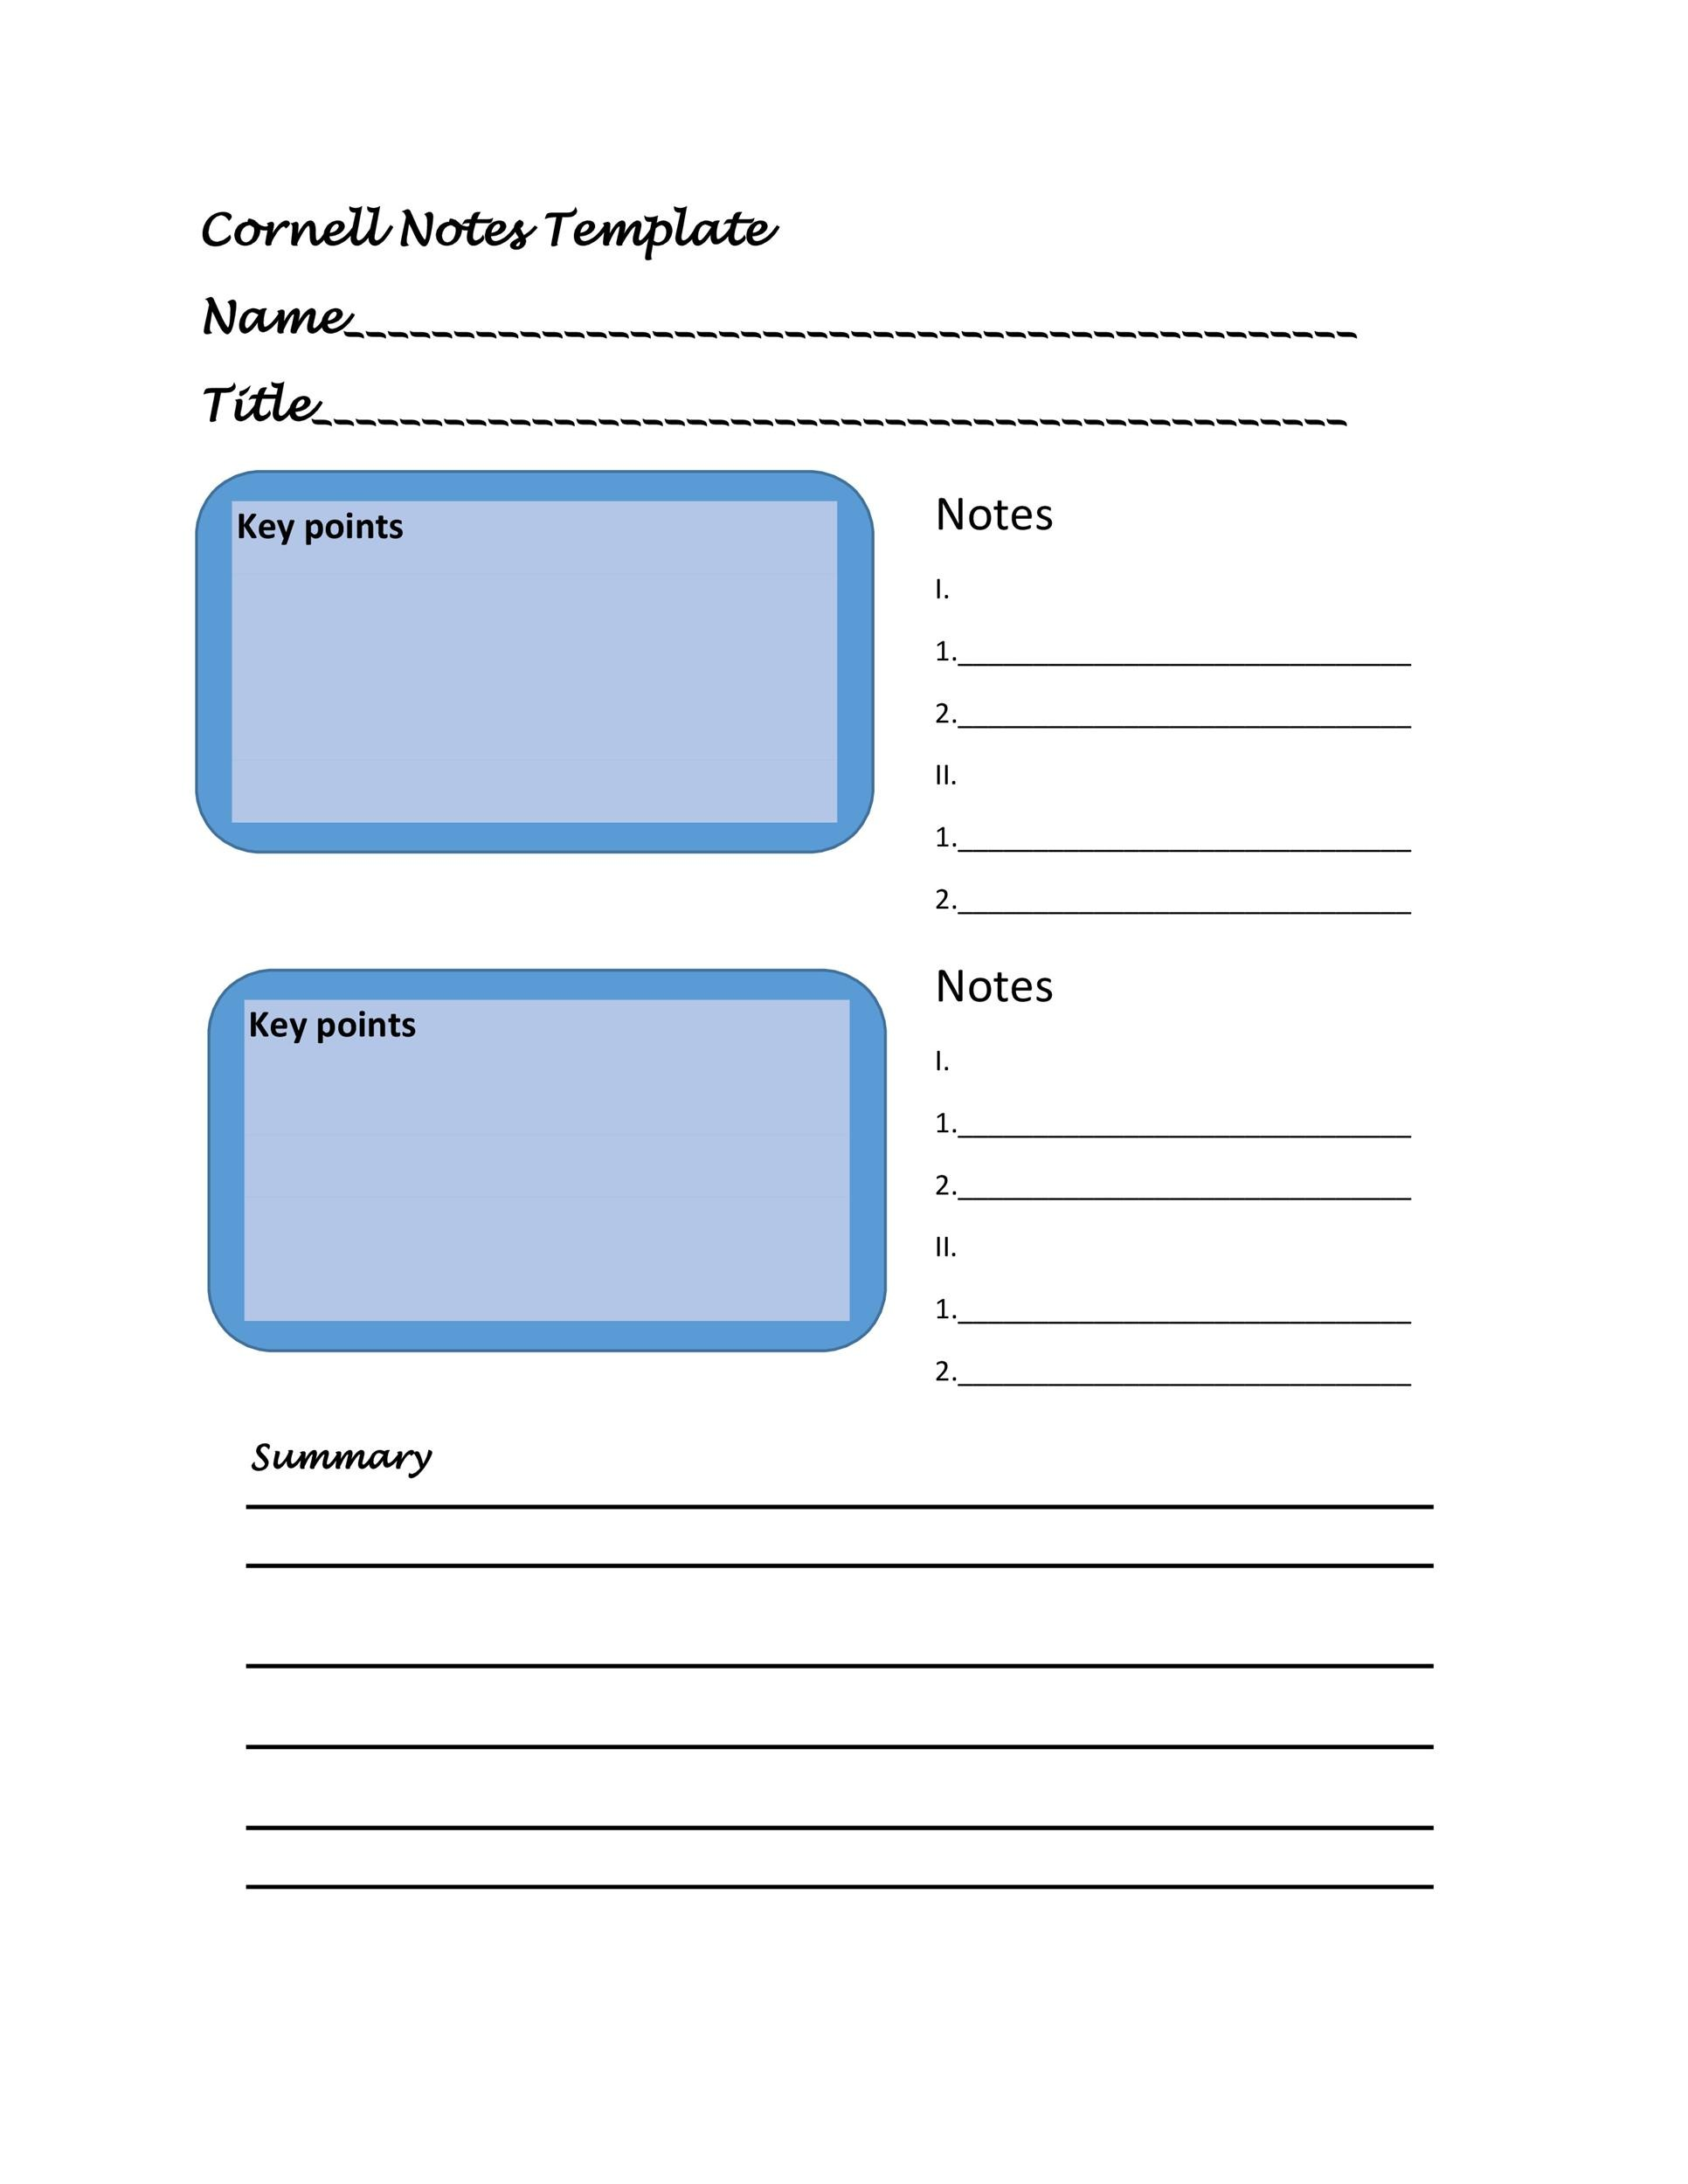 Free Cornell Notes Template 35